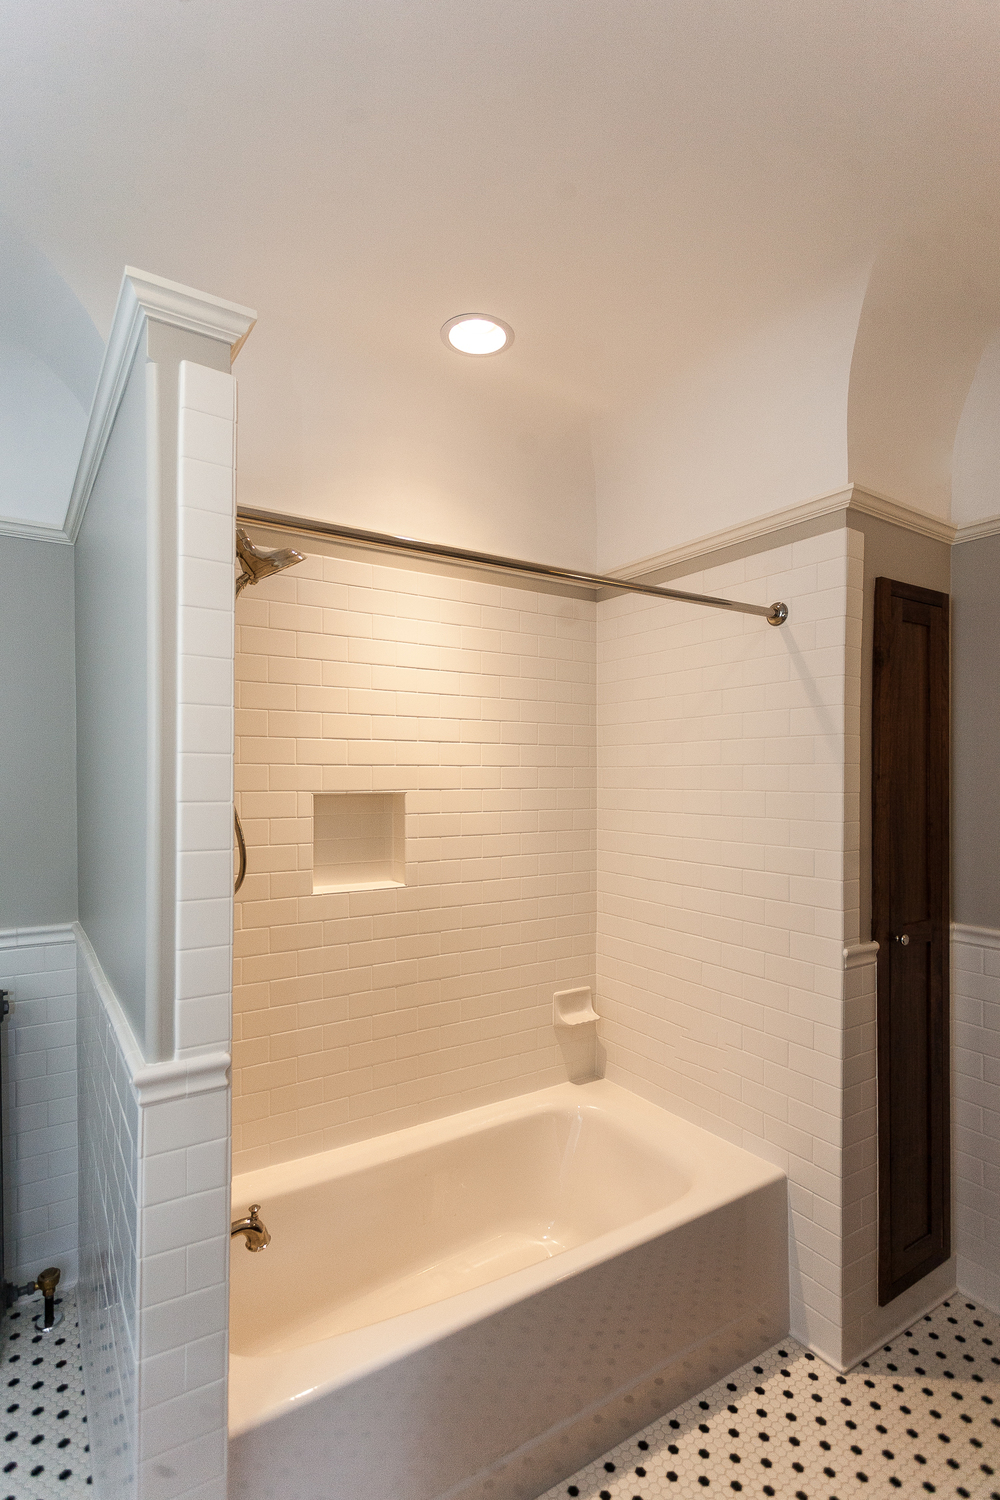 Sean Perry Bathroom Renovation